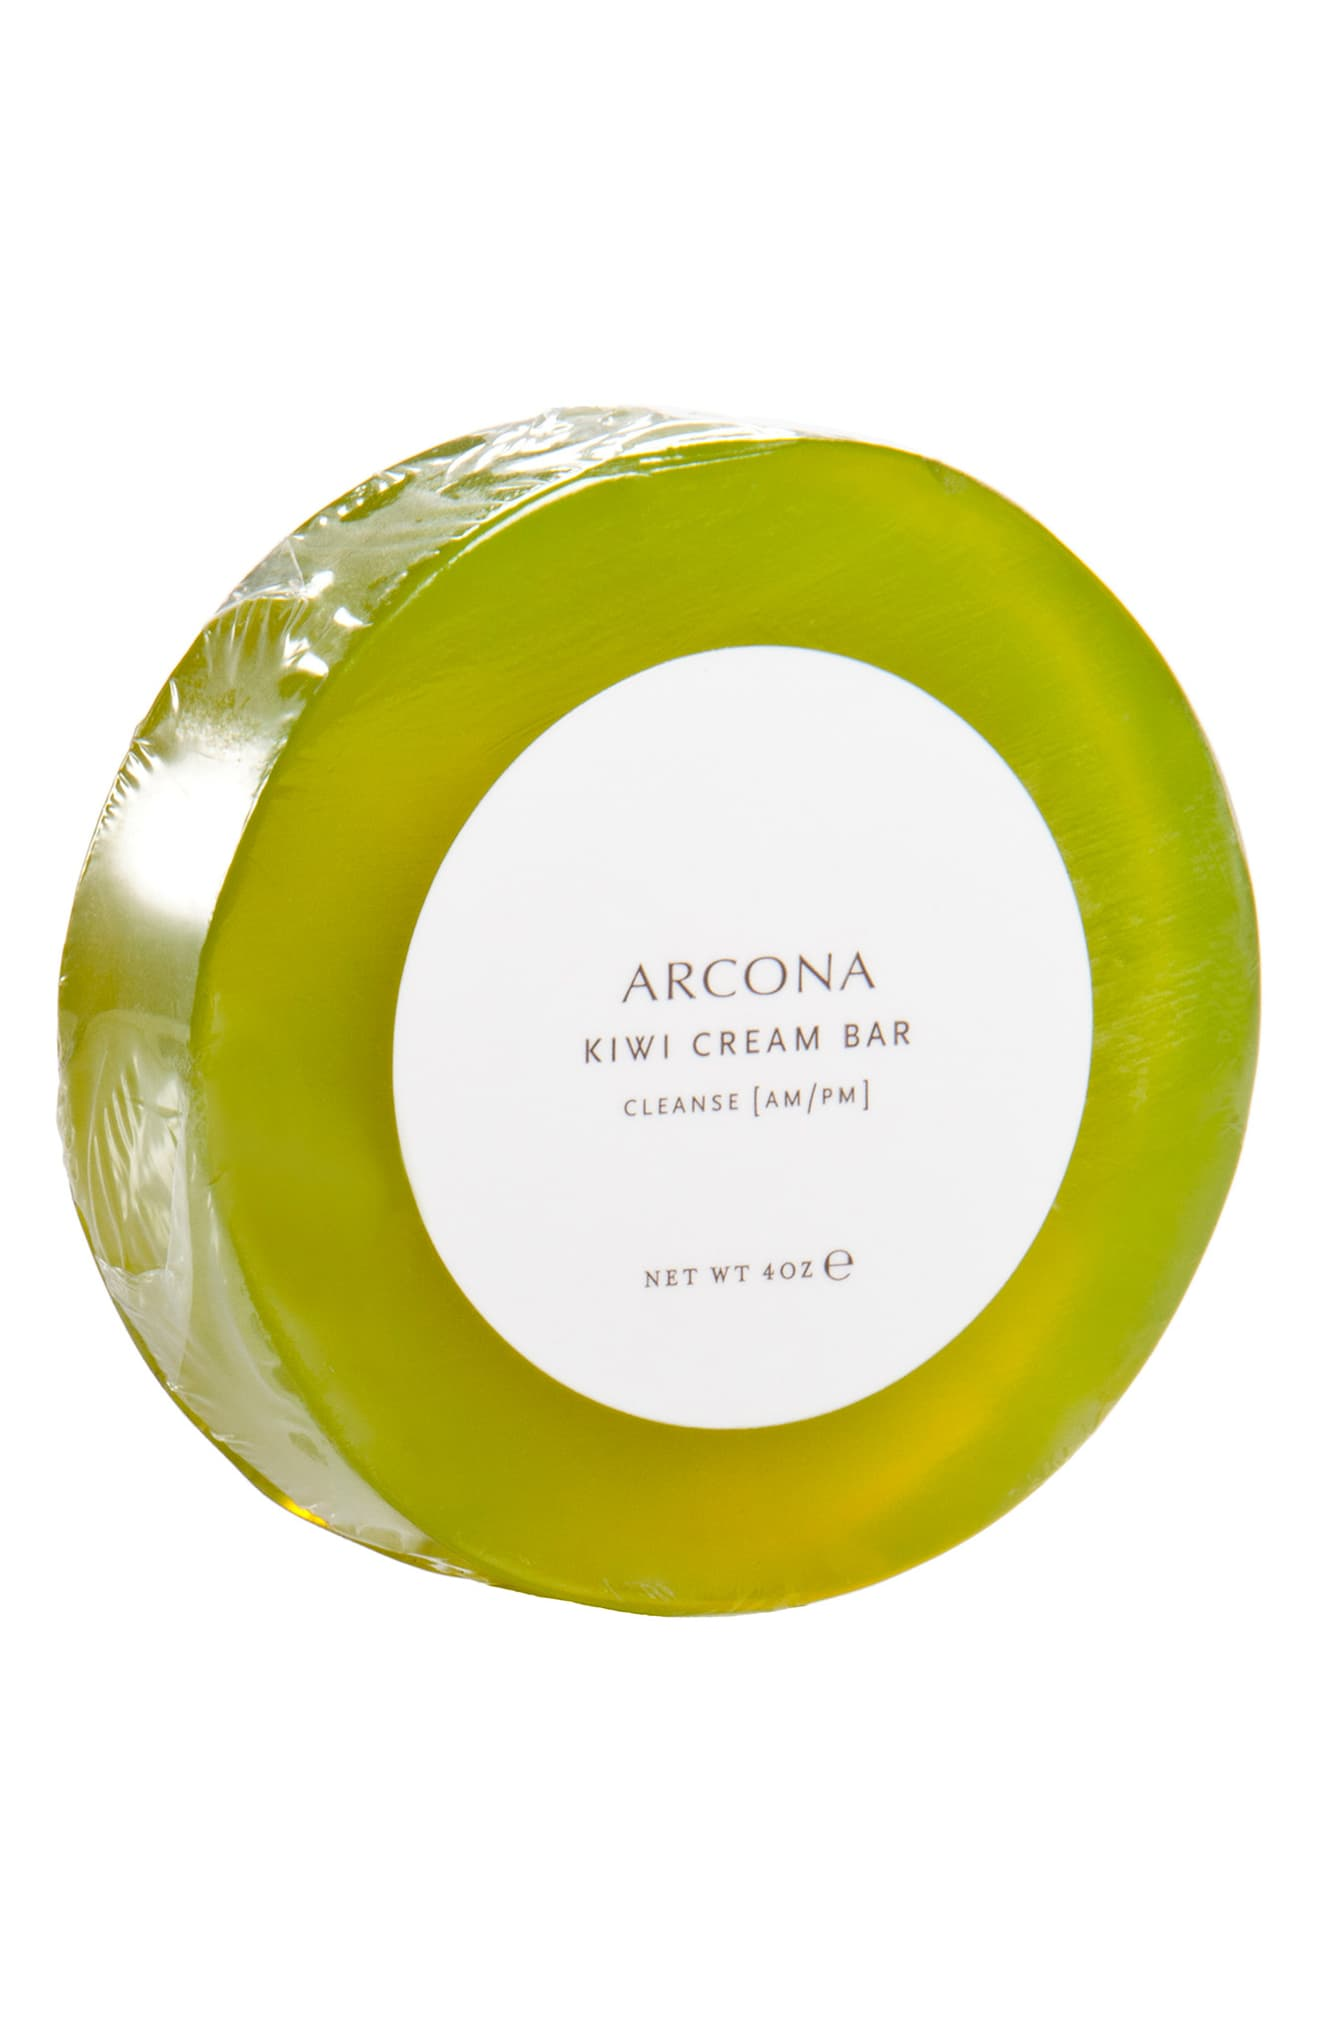 ARCONA Kiwi Cream Bar Facial Cleanser